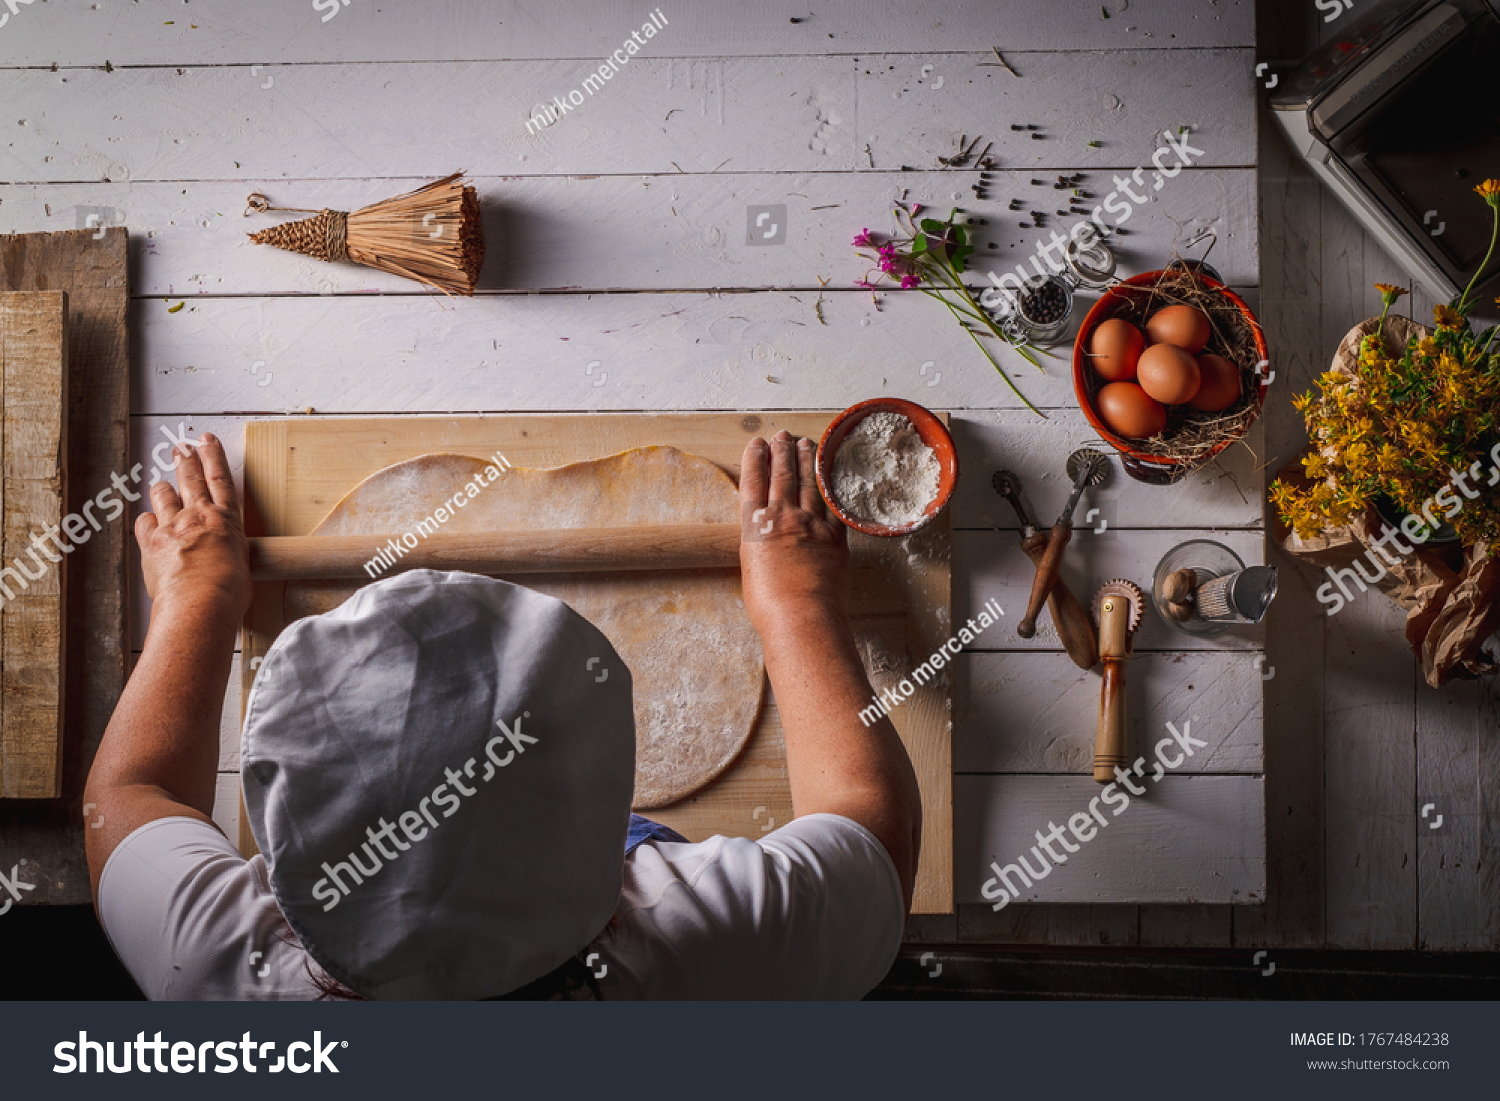 https://lnx.mirkone.it/wp-content/uploads/2016/01/stock-photo-seen-from-the-top-of-the-homemade-pasta-making-process-the-chef-makes-traditional-italian-fresh-1767484238.jpg